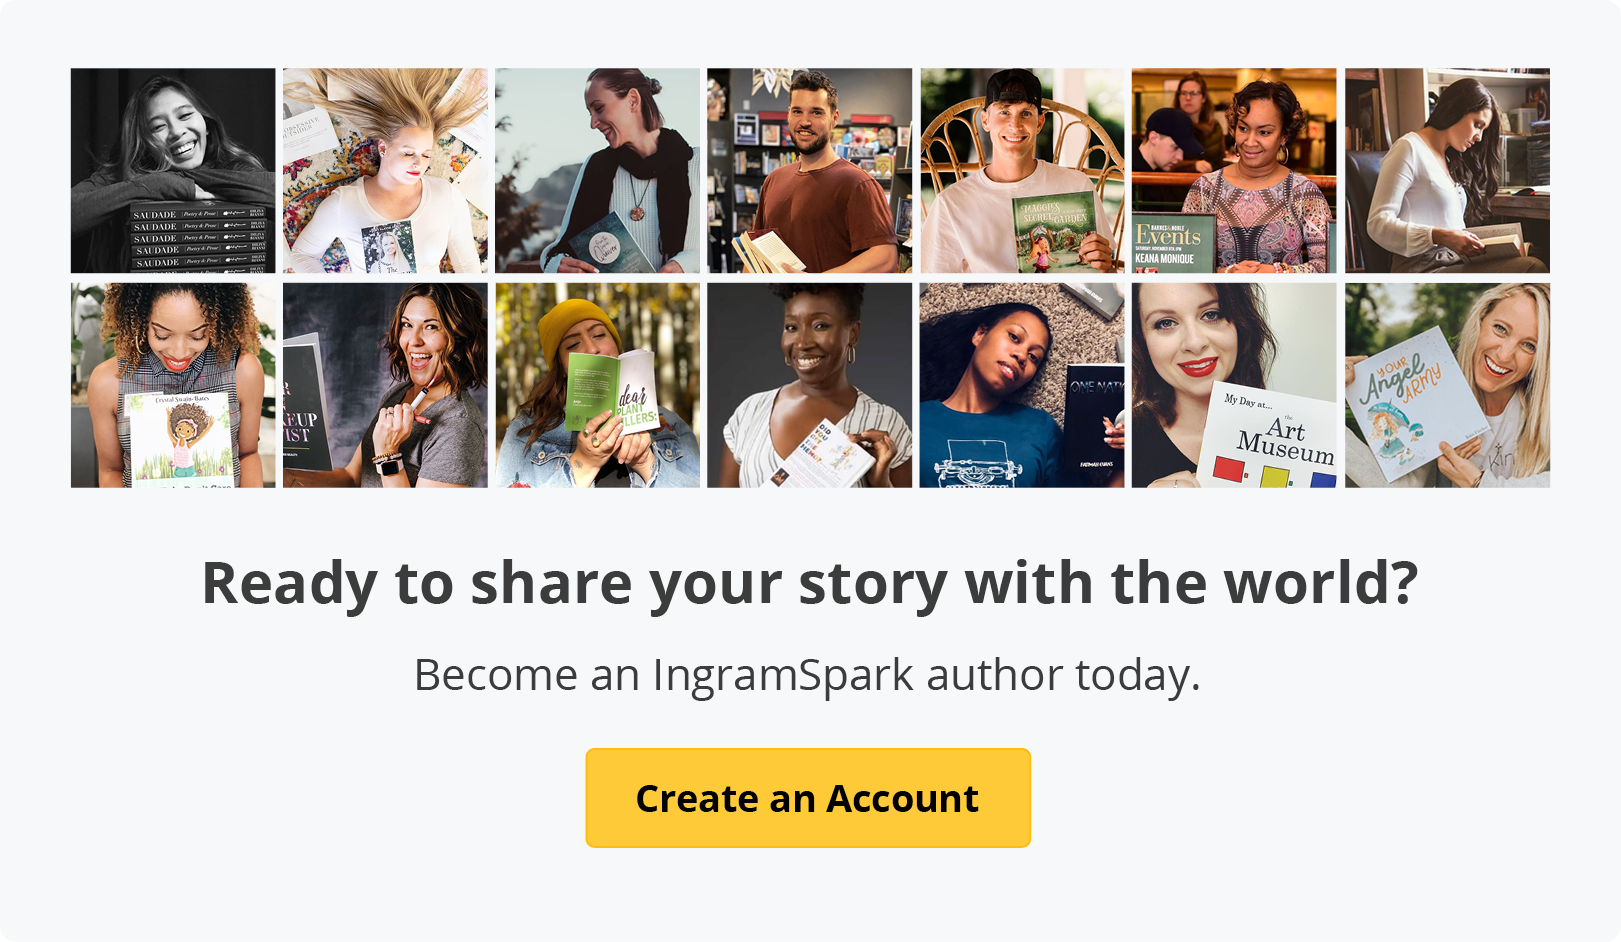 Share your story with the world. Create an IngramSpark account today.